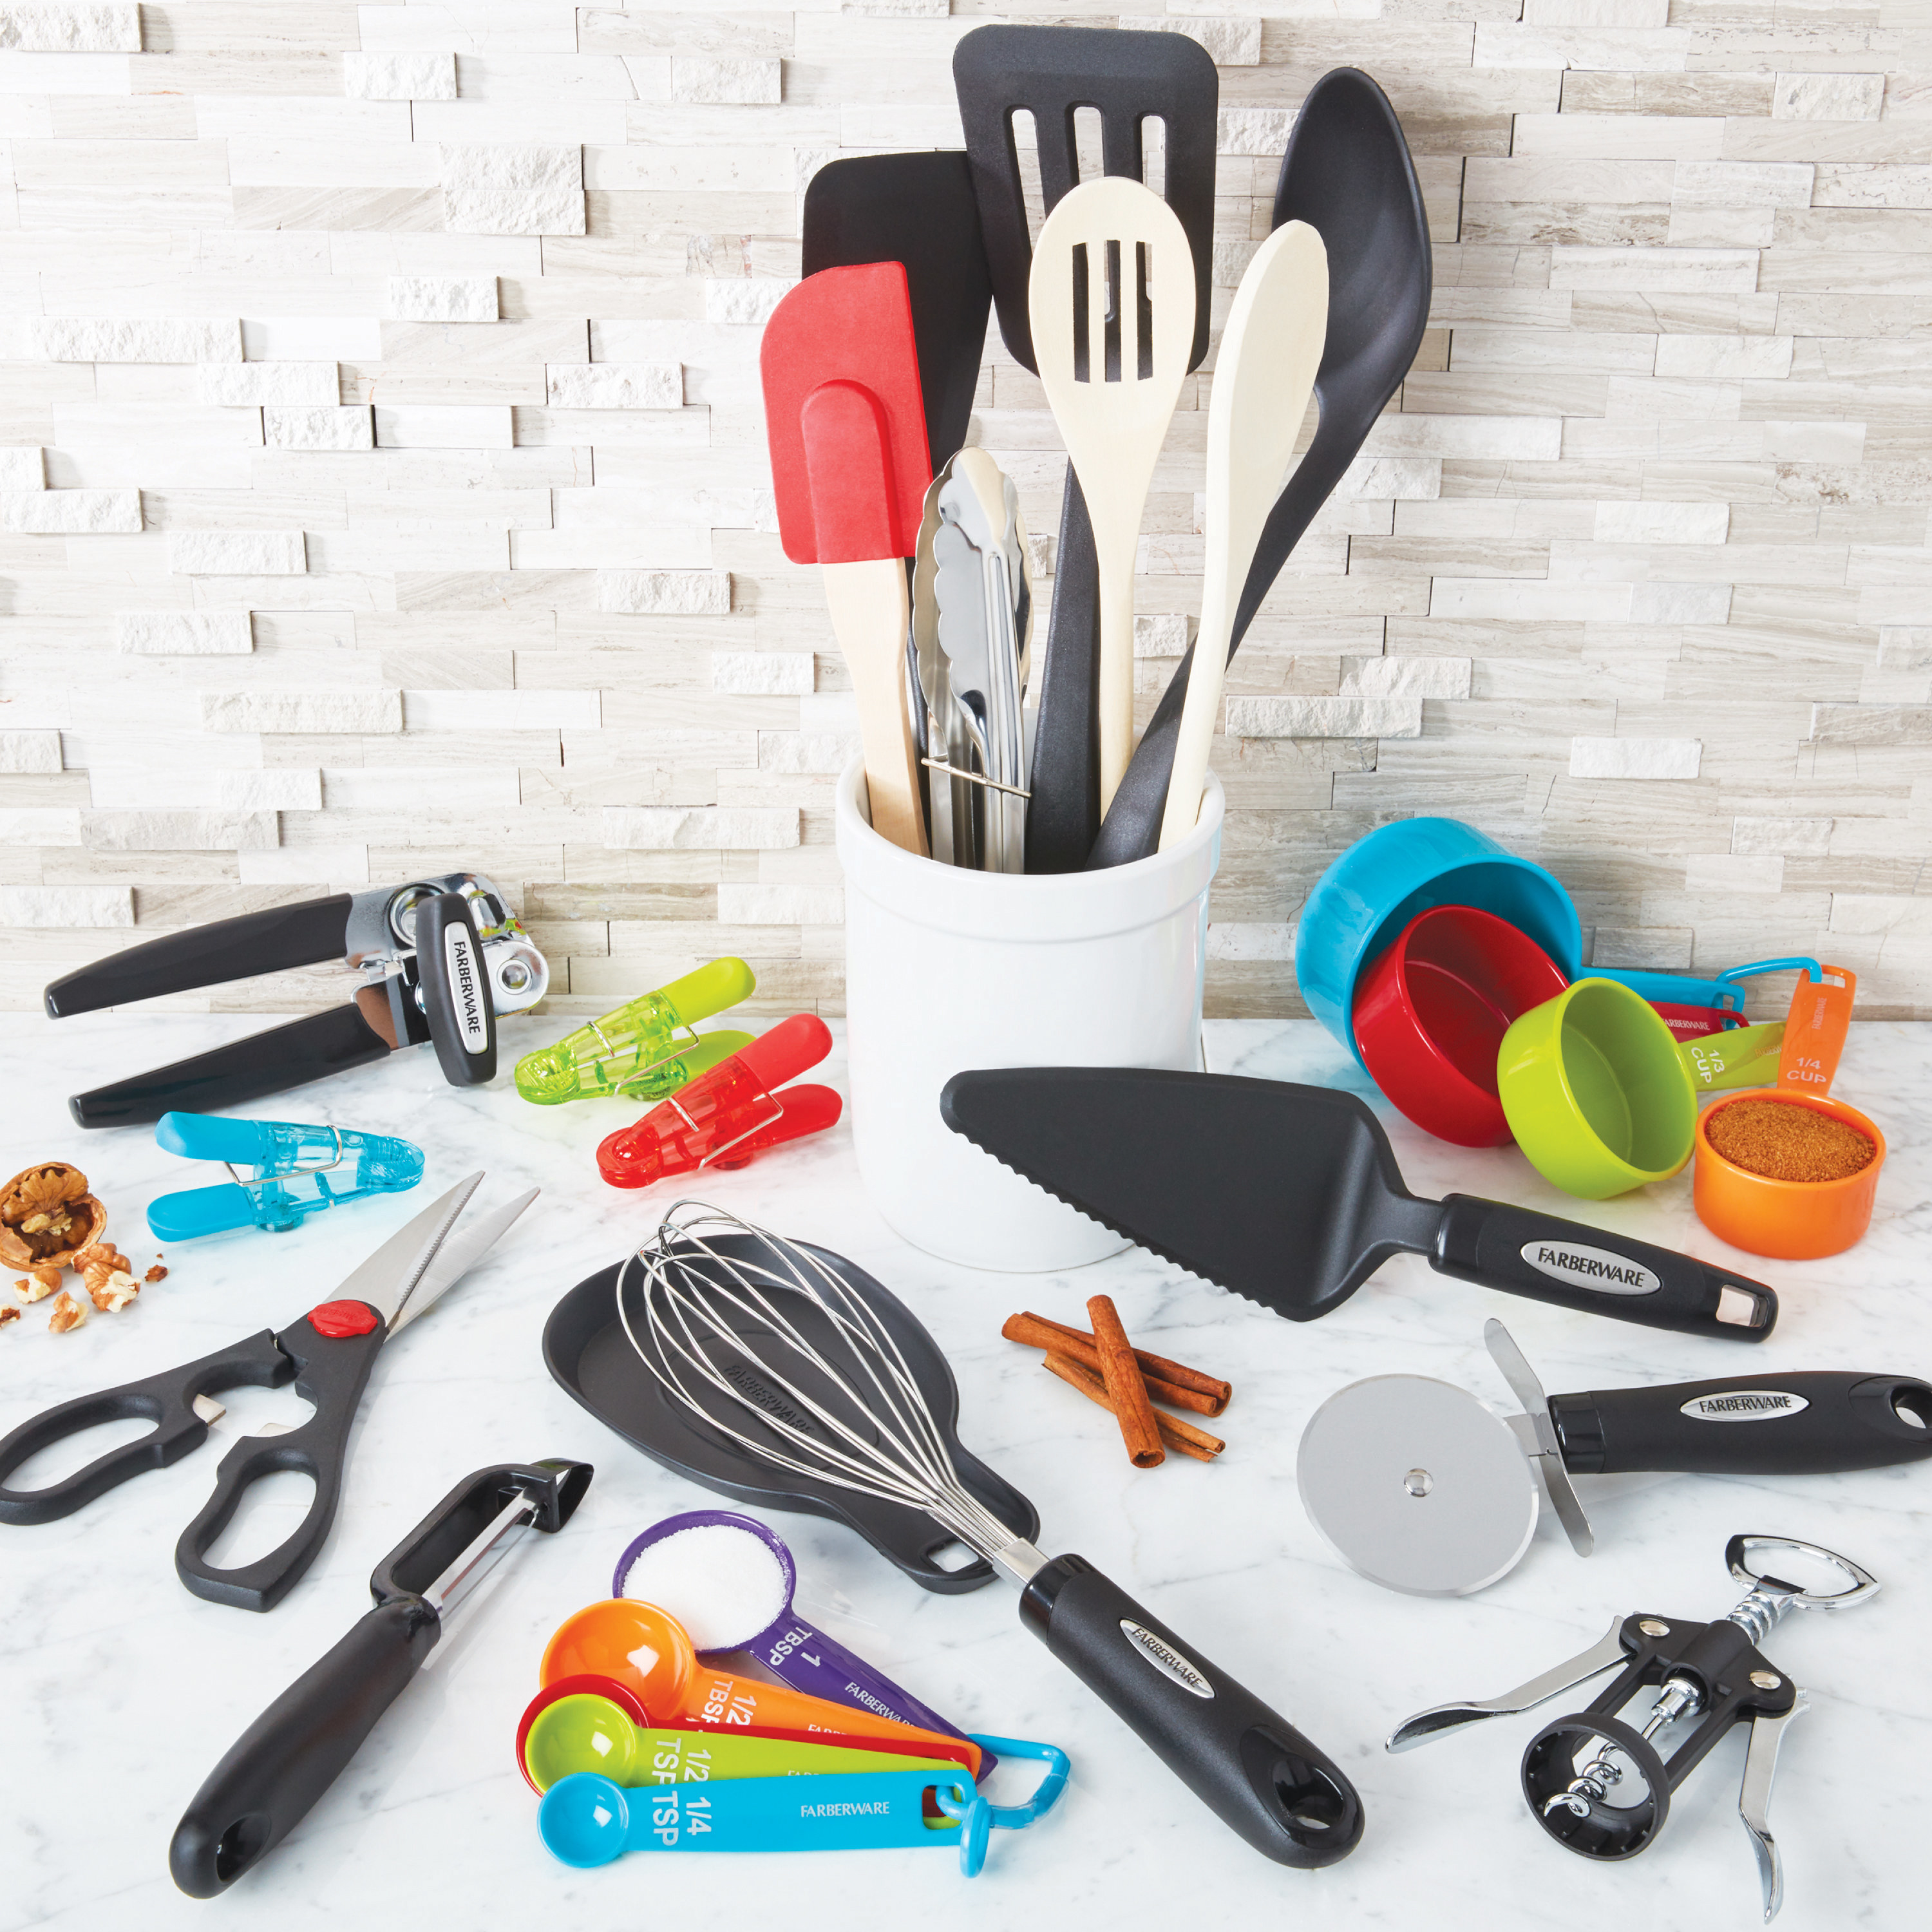 The many-piece gadget set on a counter